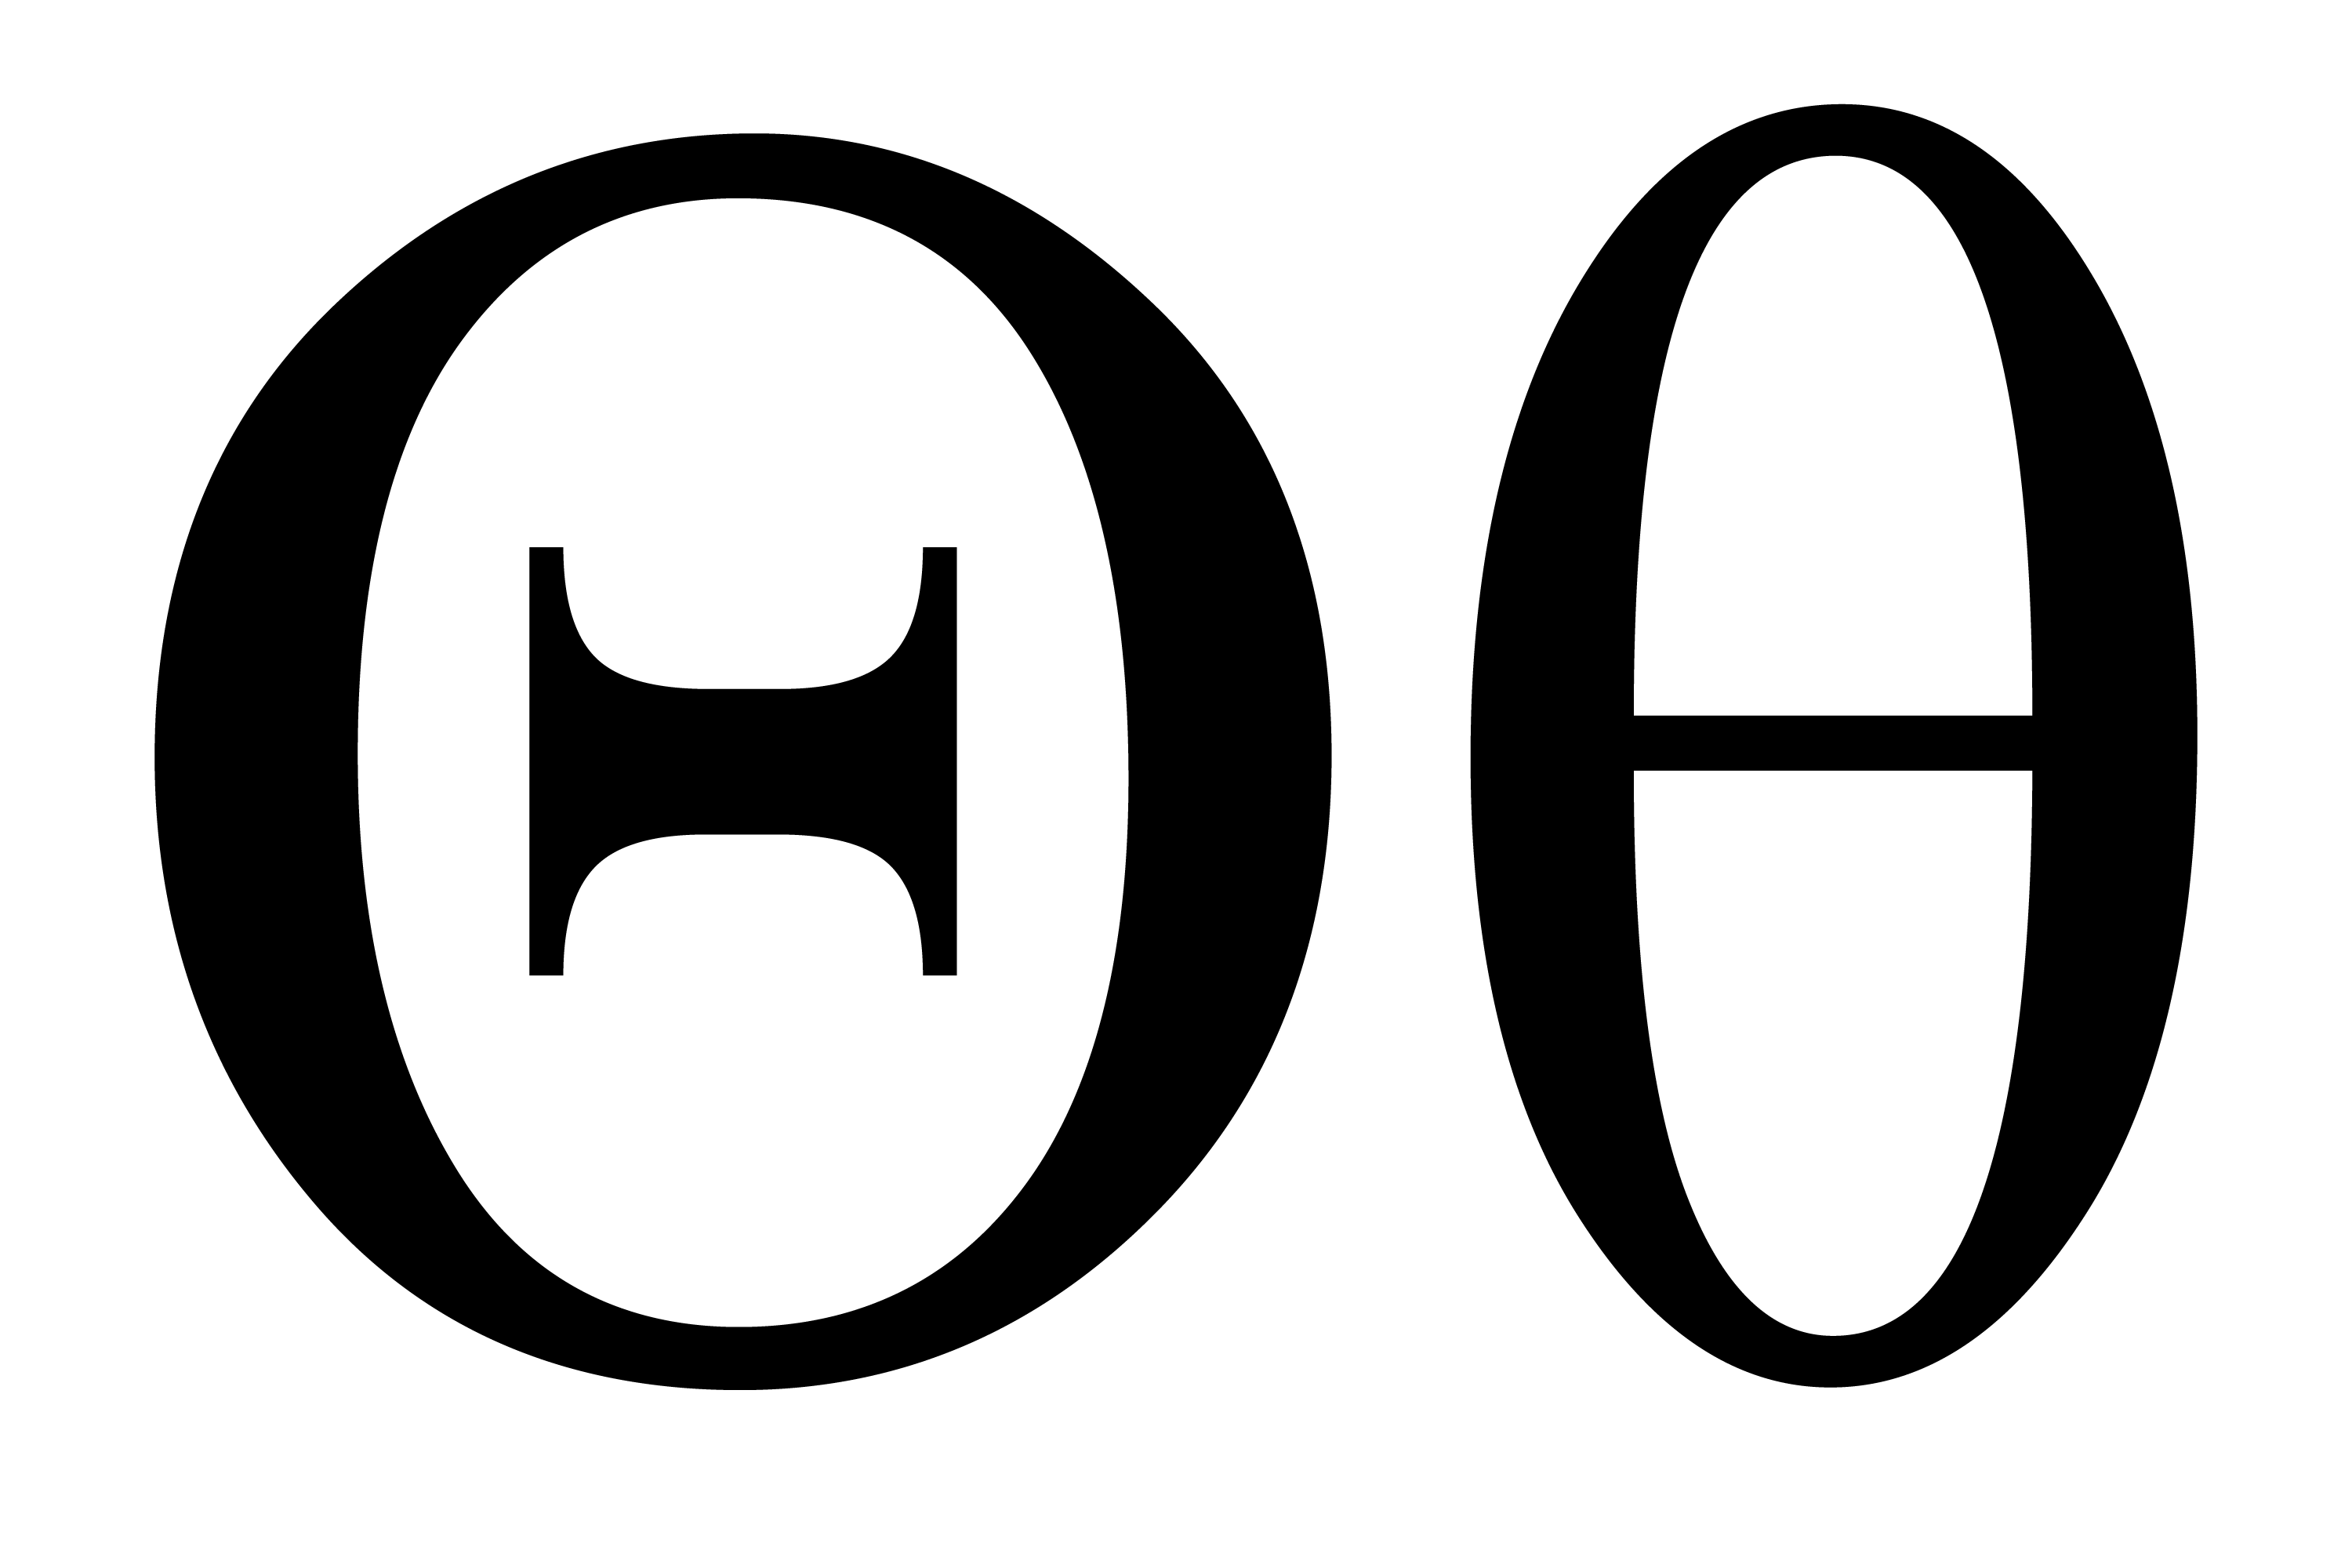 Theta Symbol And Its Meaning – Theta Letter/Sign In Greek Alphabet